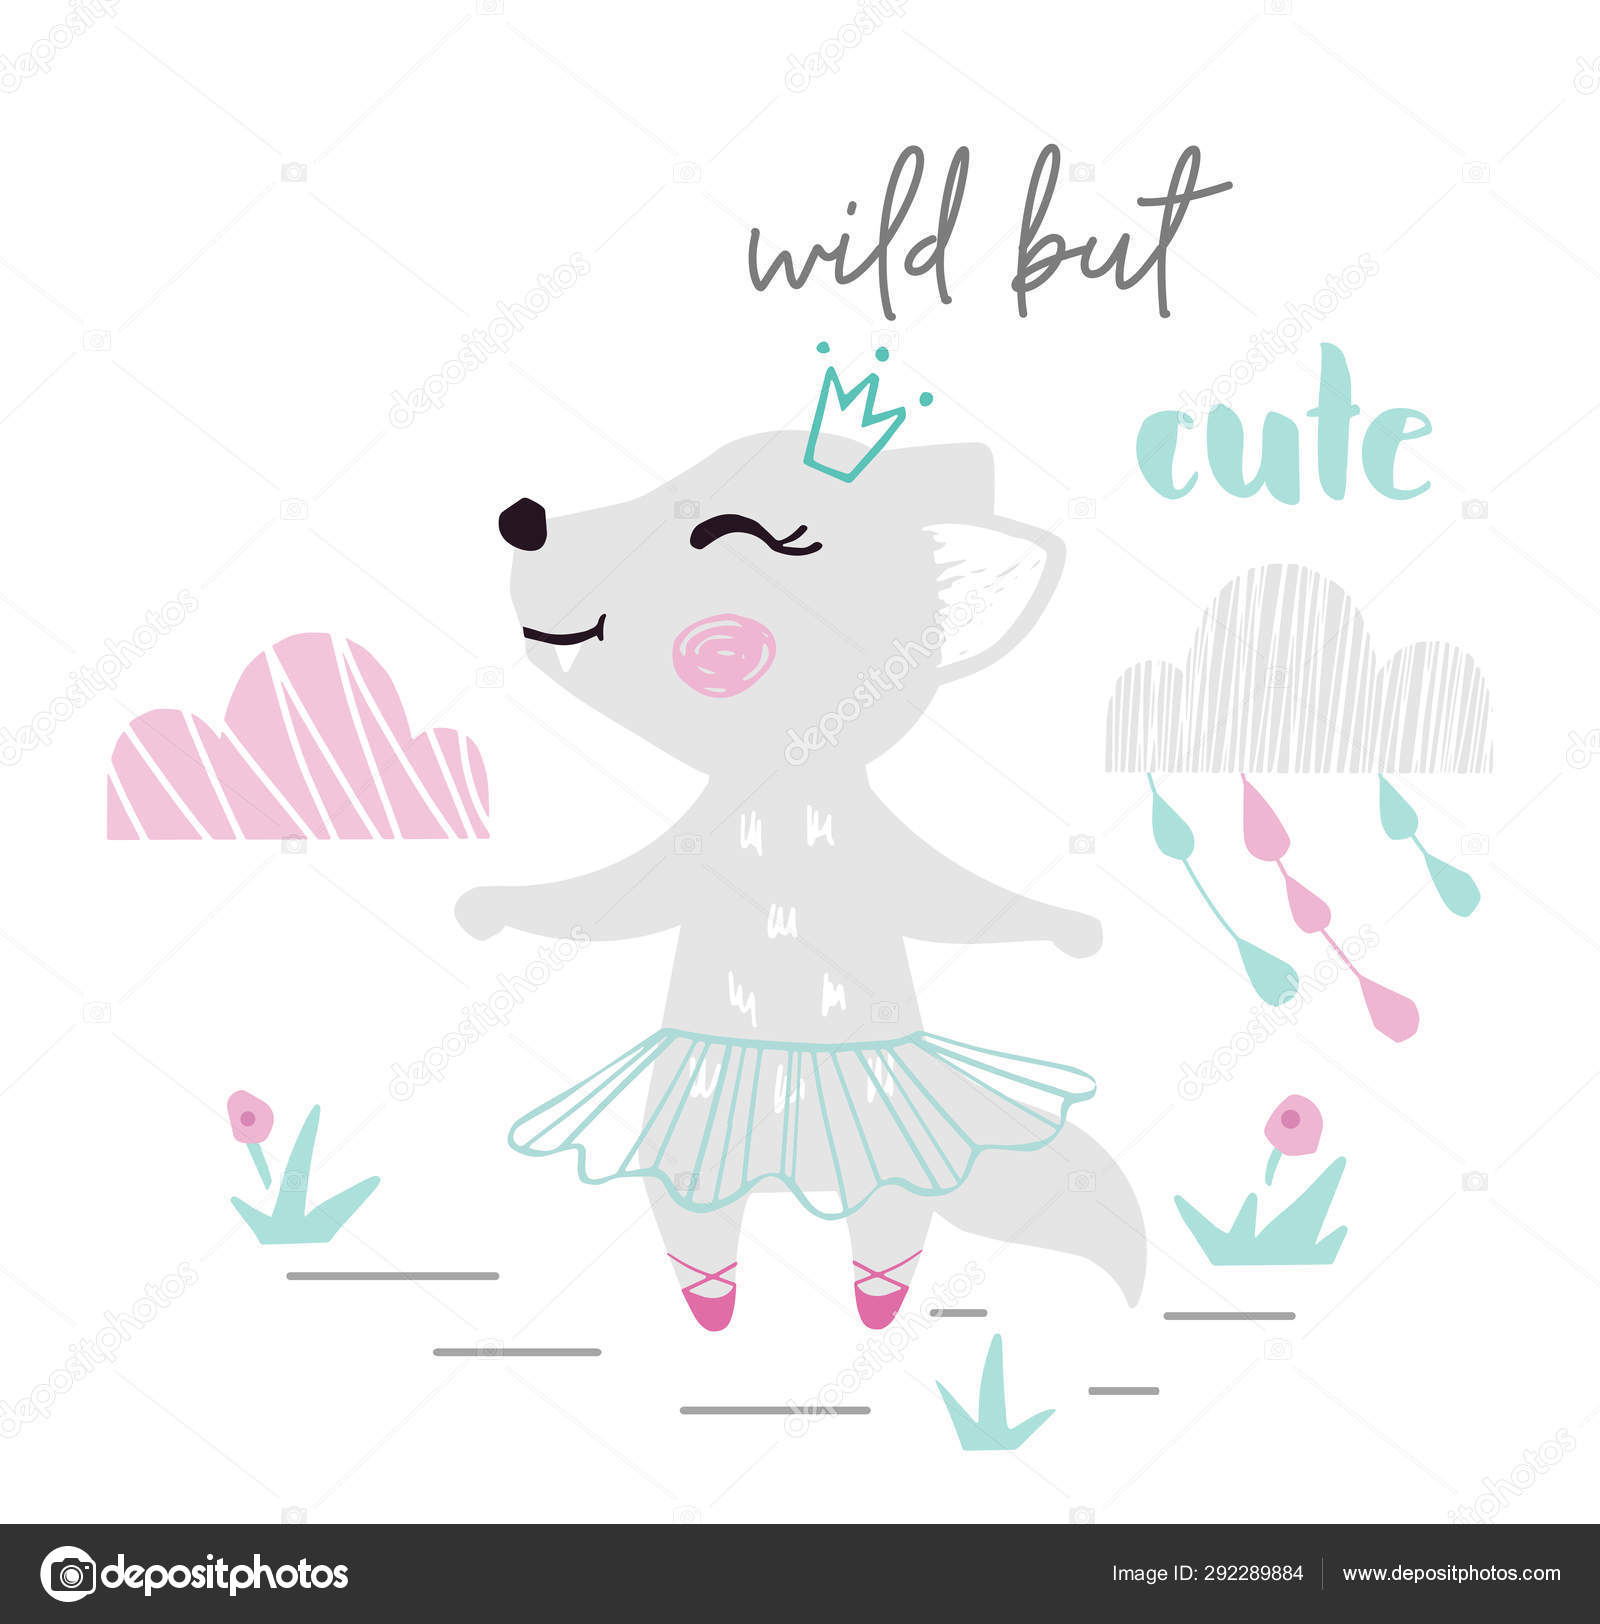 Wolf Baby Girl Cute Print Sweet She Wolf Ballerina Dance With Ballet Tutu Pointe And Wild But Cute Slogan Stock Vector C Nordfox 292289884